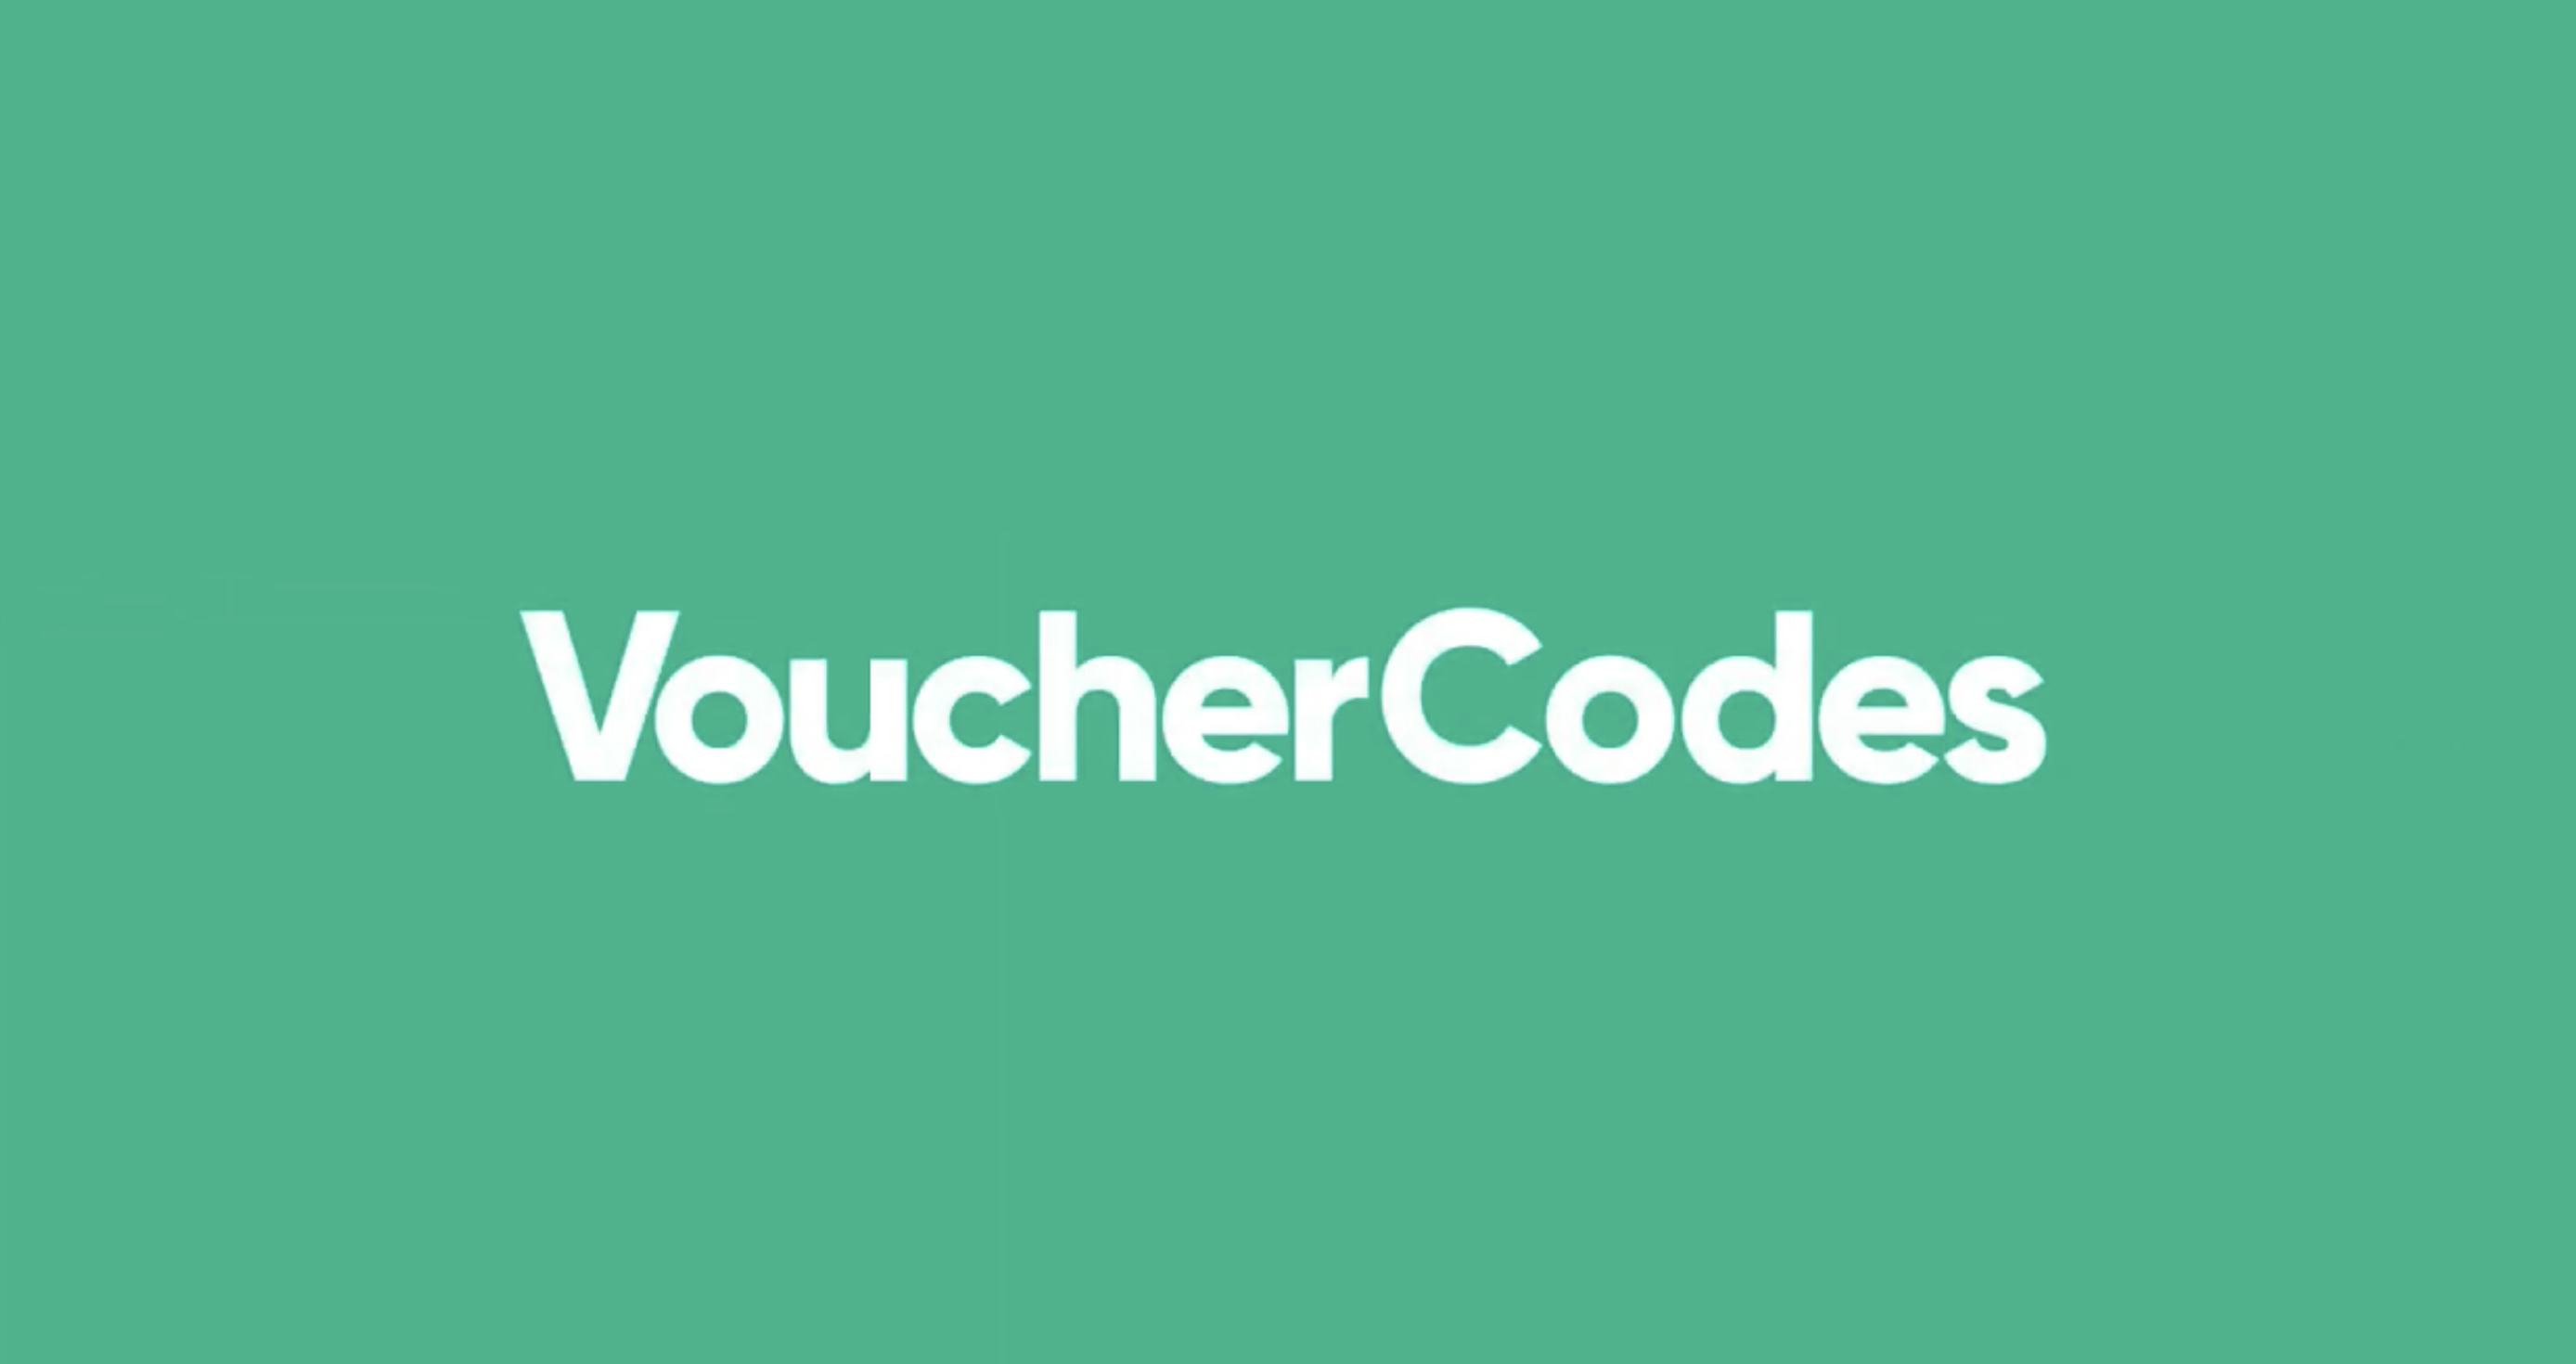 Voucher codes uk